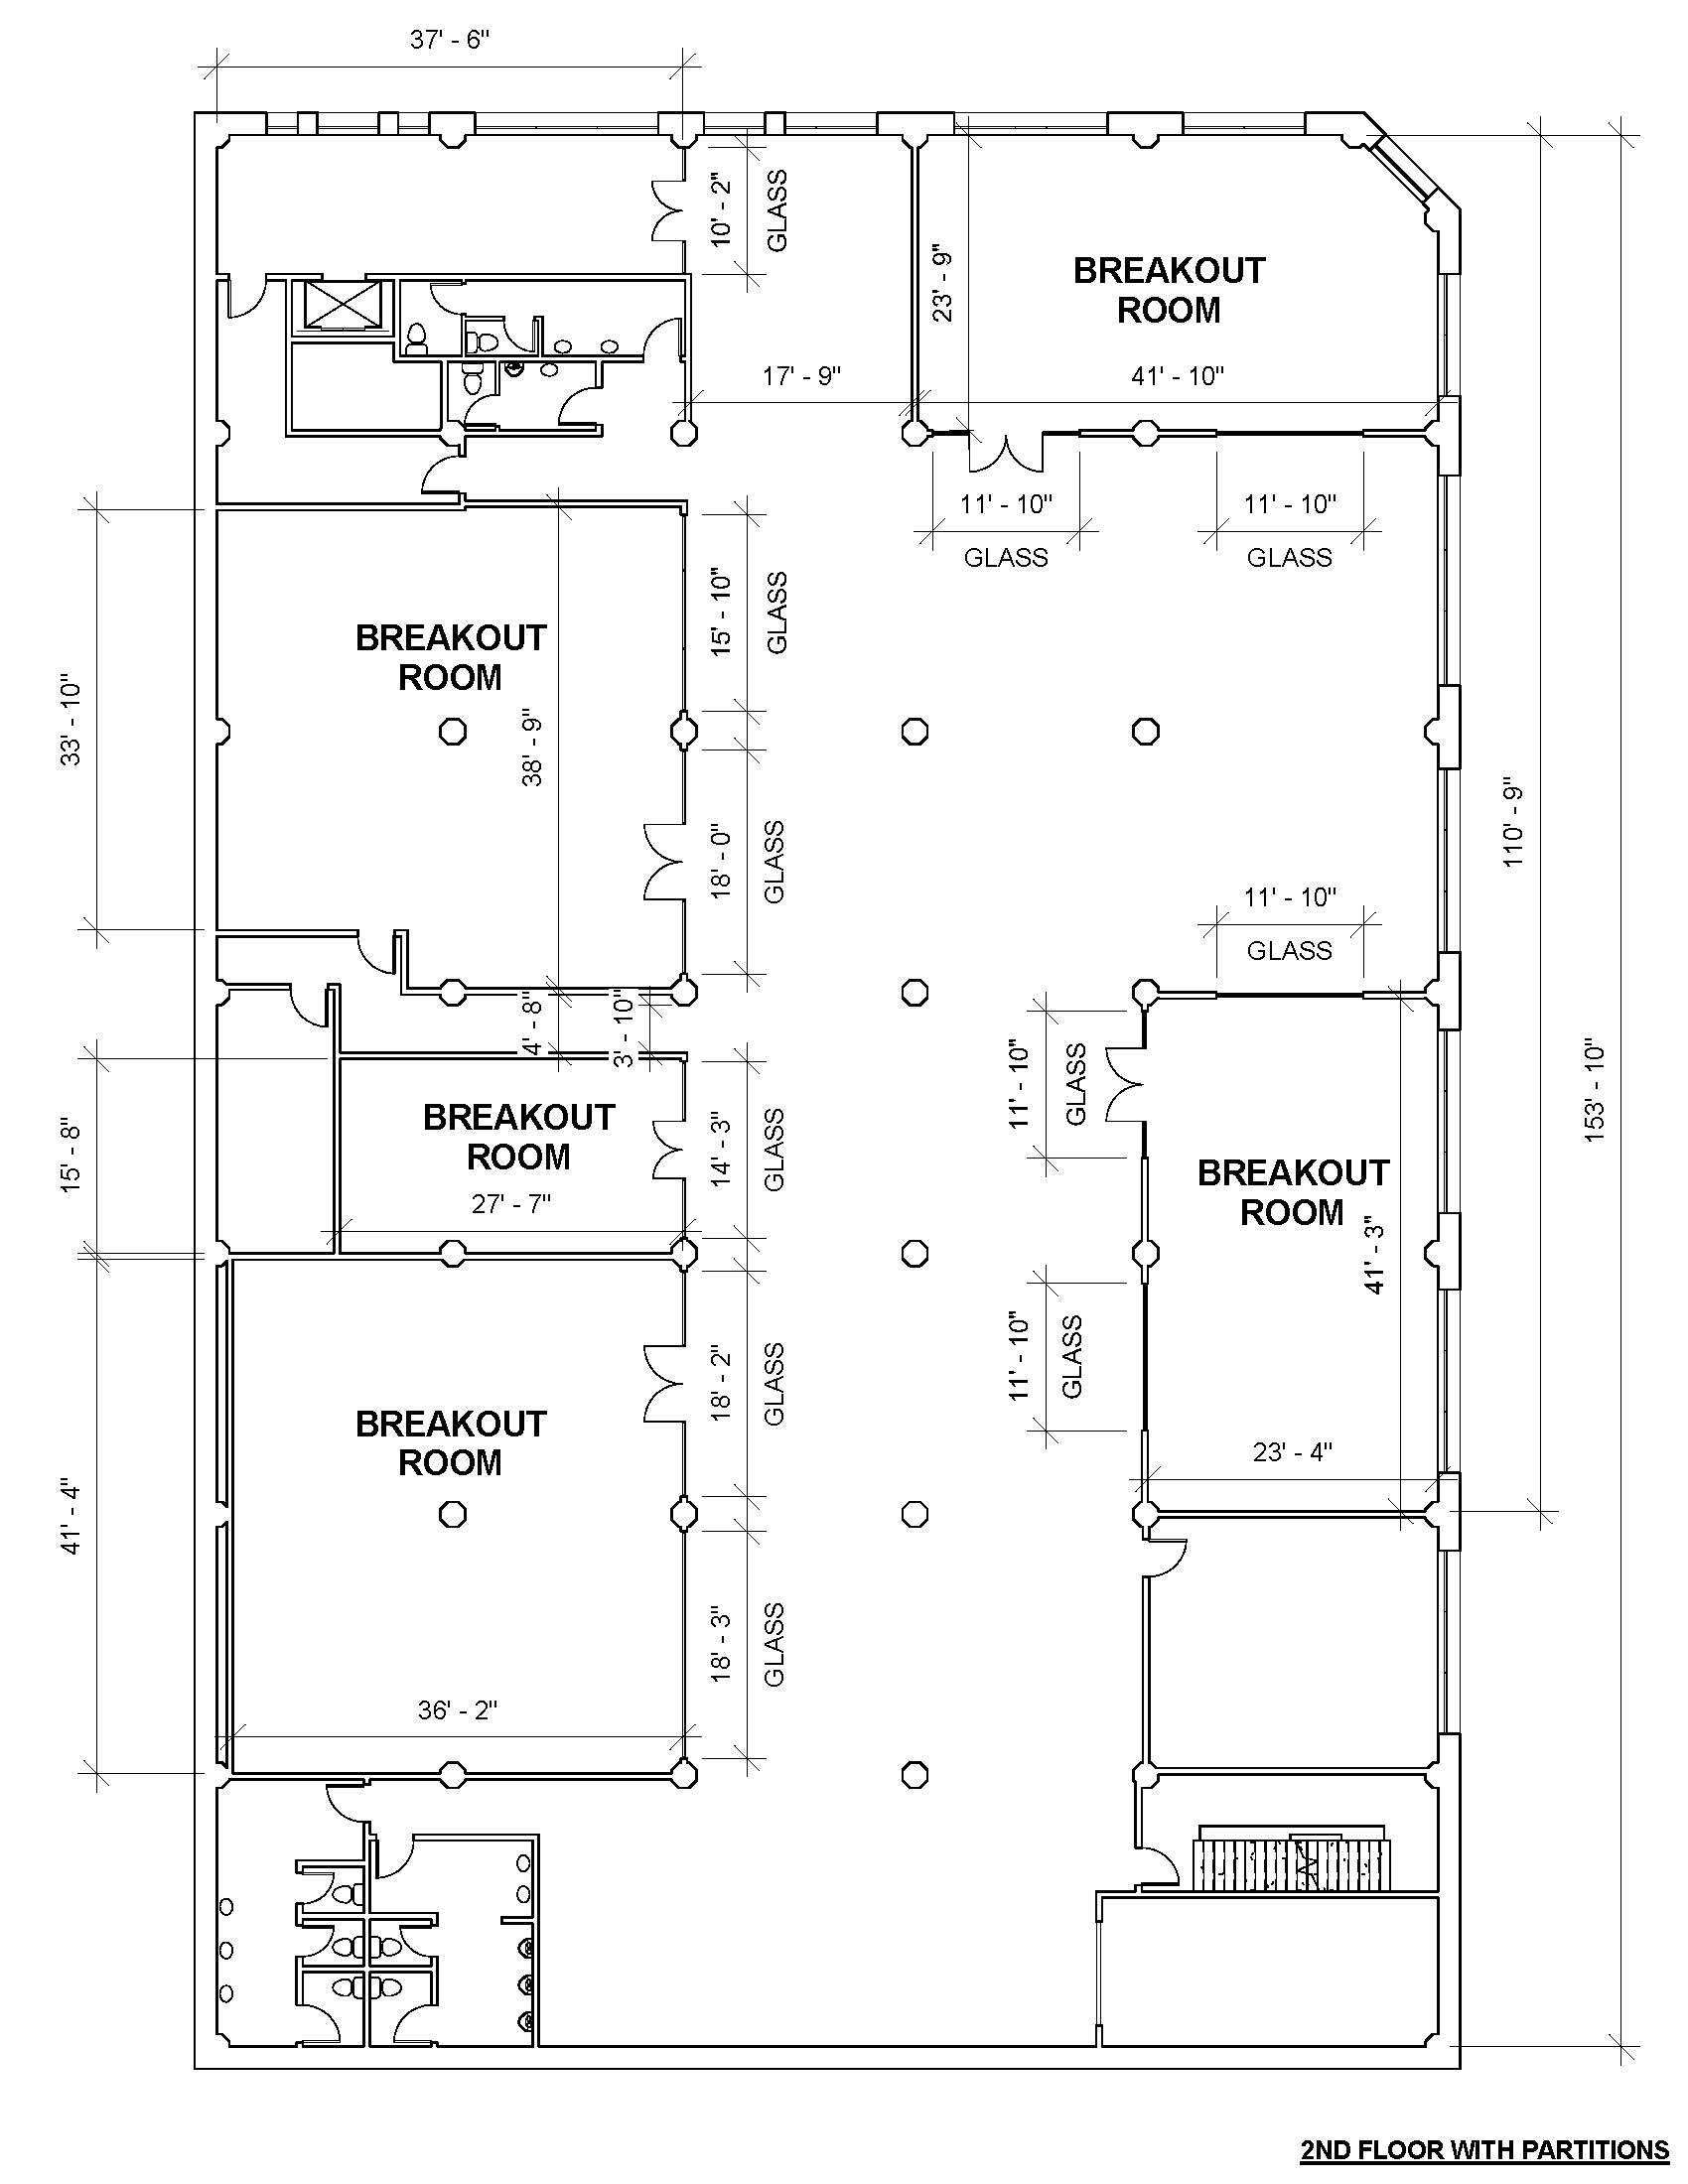 2018-05-09+2nd+Floor+Schematic+with+Partitions.jpg